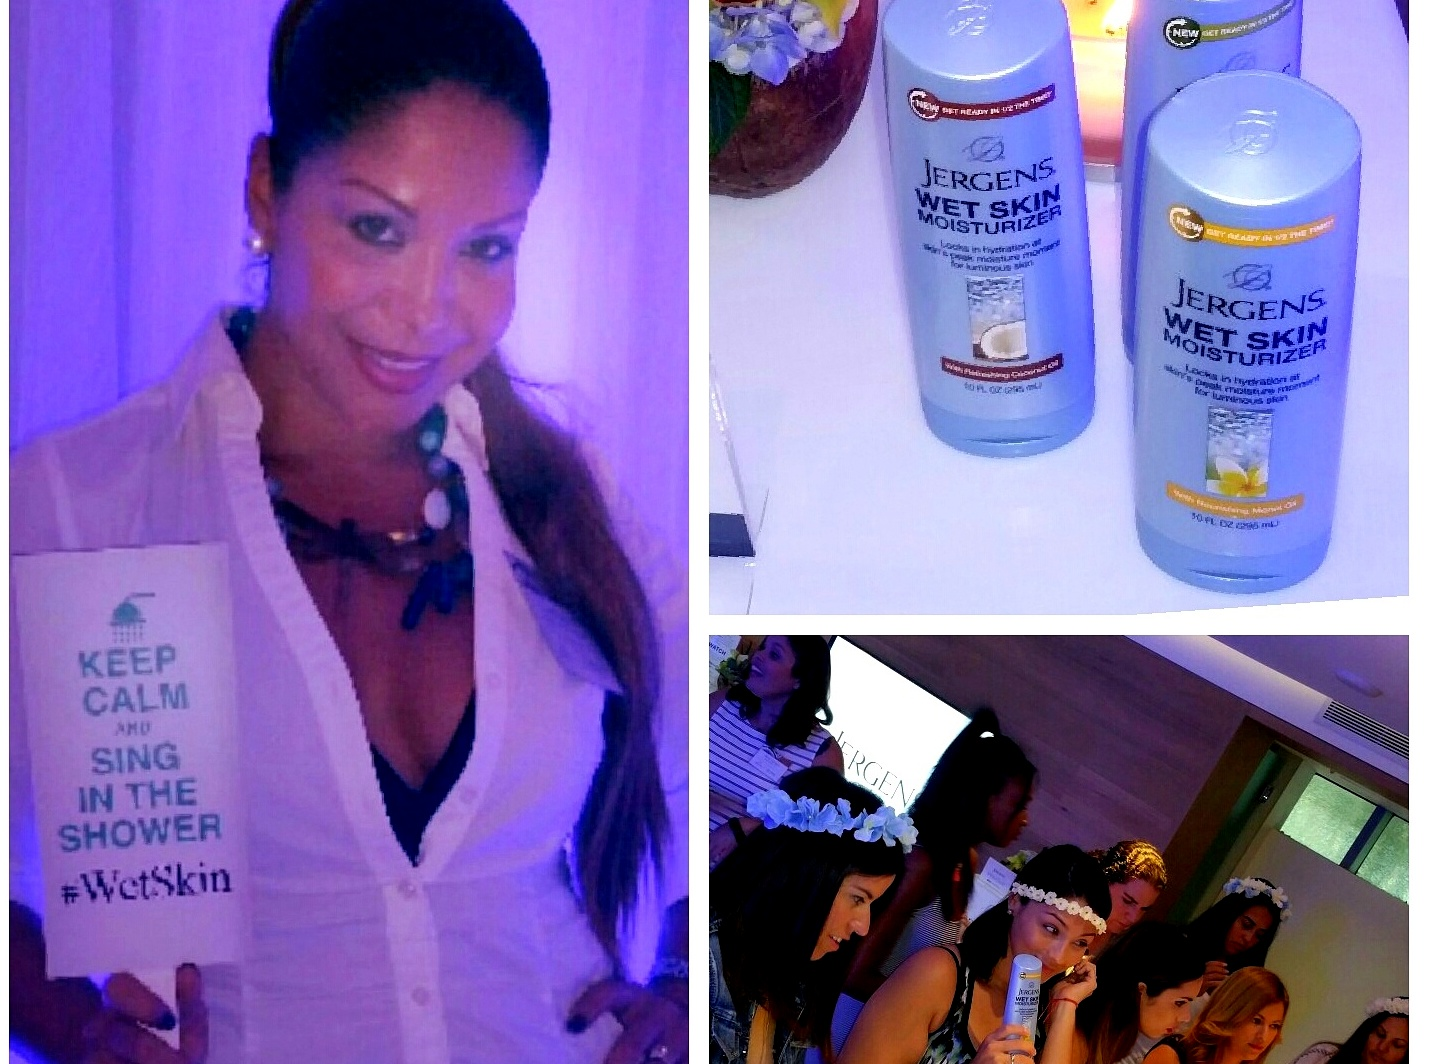 Jergens Wet Skin makes a splash at Miami Swim Week